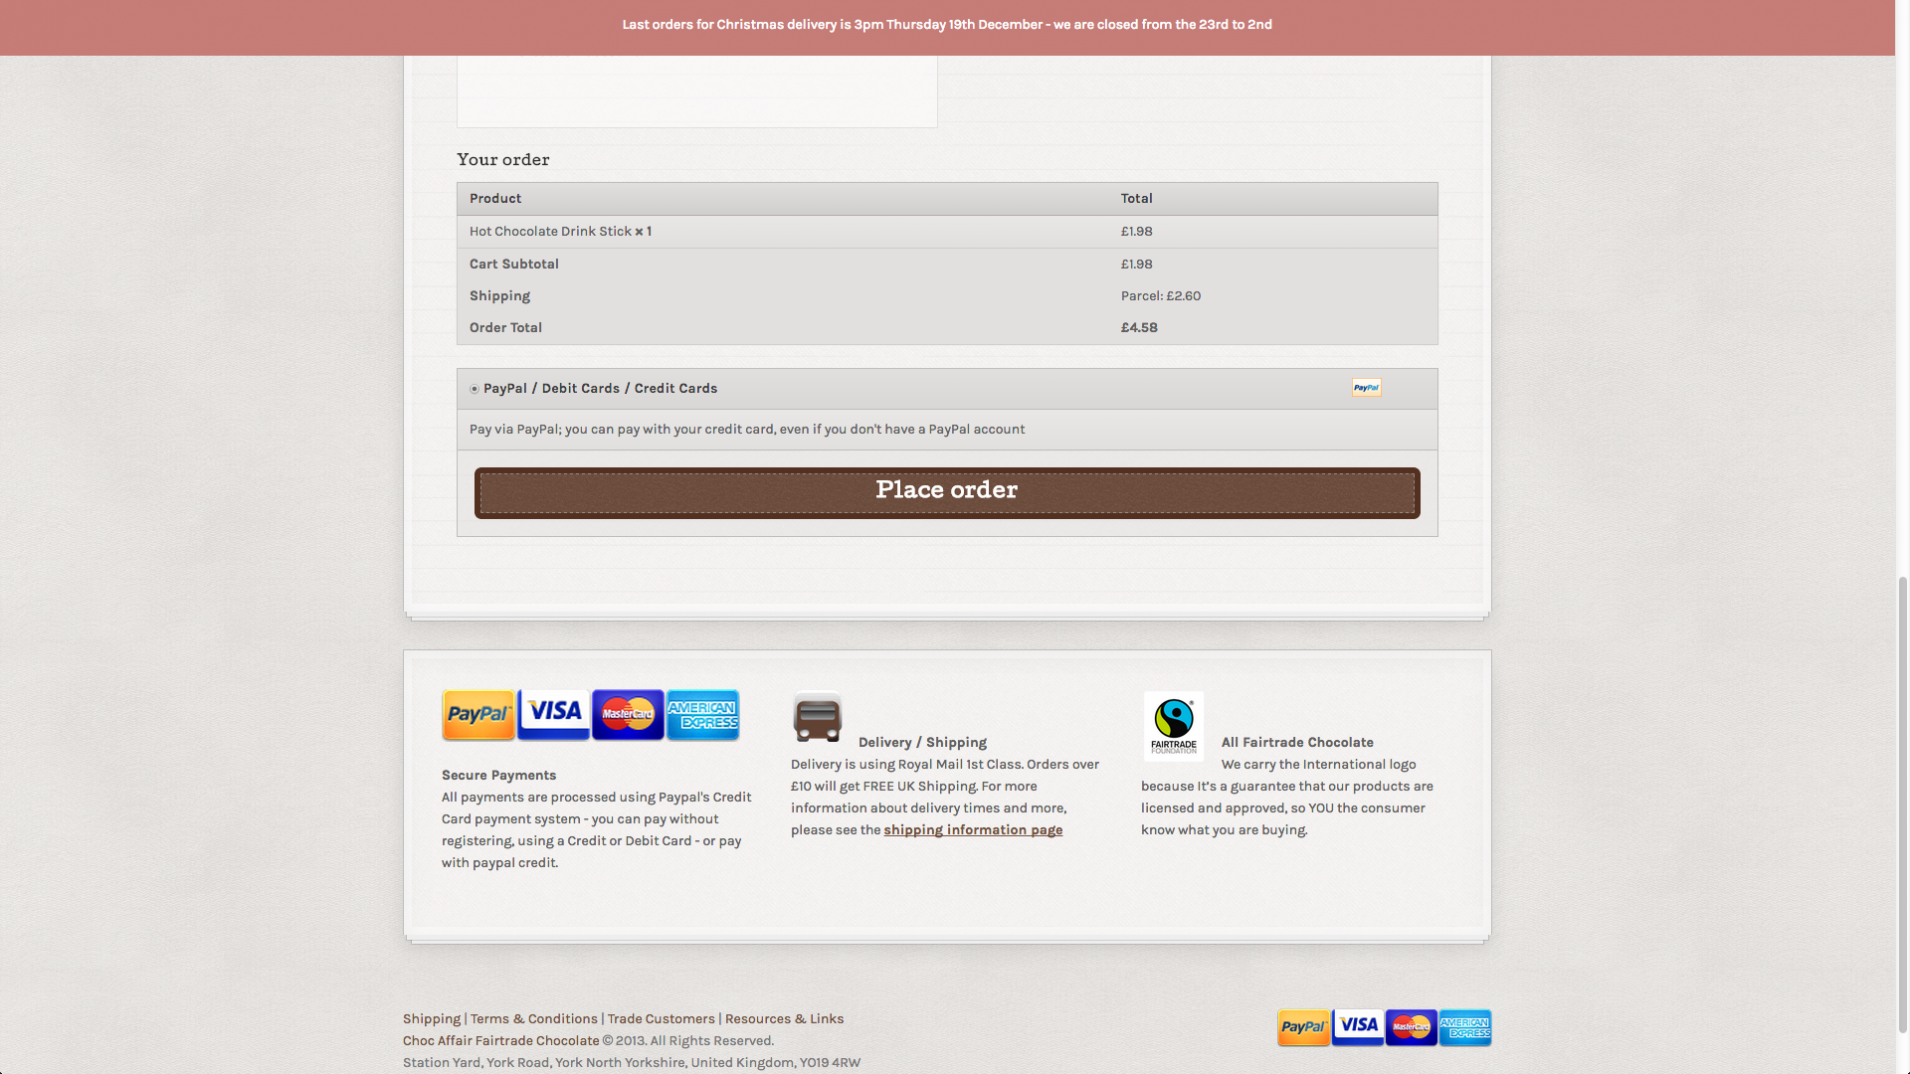 Screen Shot 2013 12 23 at 16.25.52 - Website redesign for chocolate manufacturer